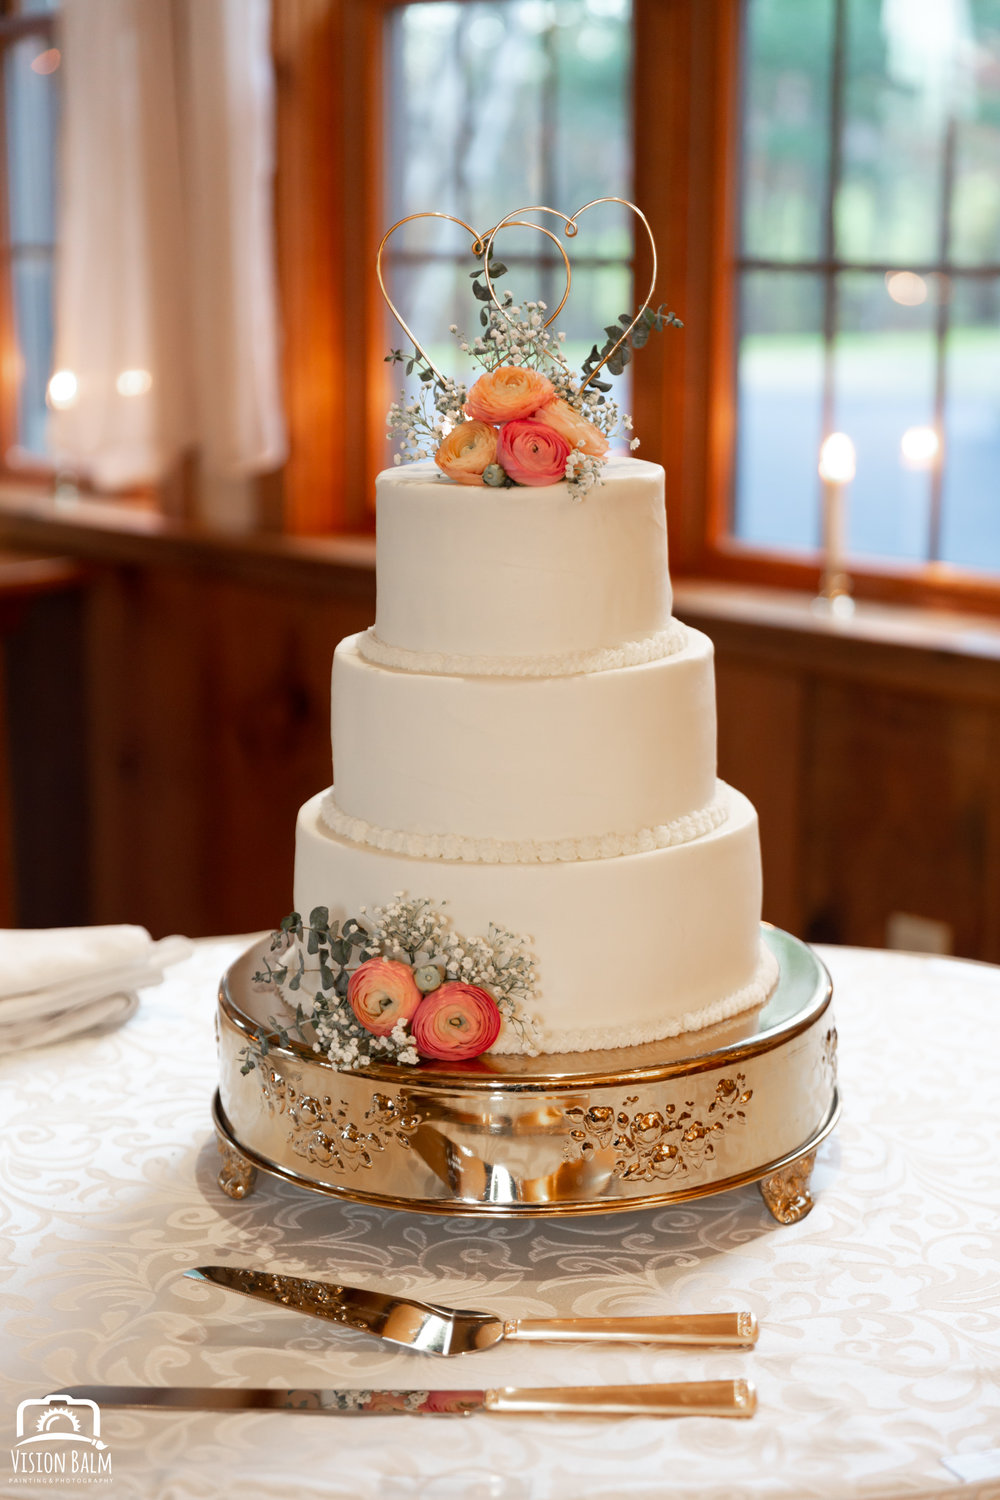 Wedding photographer Charleston, SC Vision Balm: wedding cake